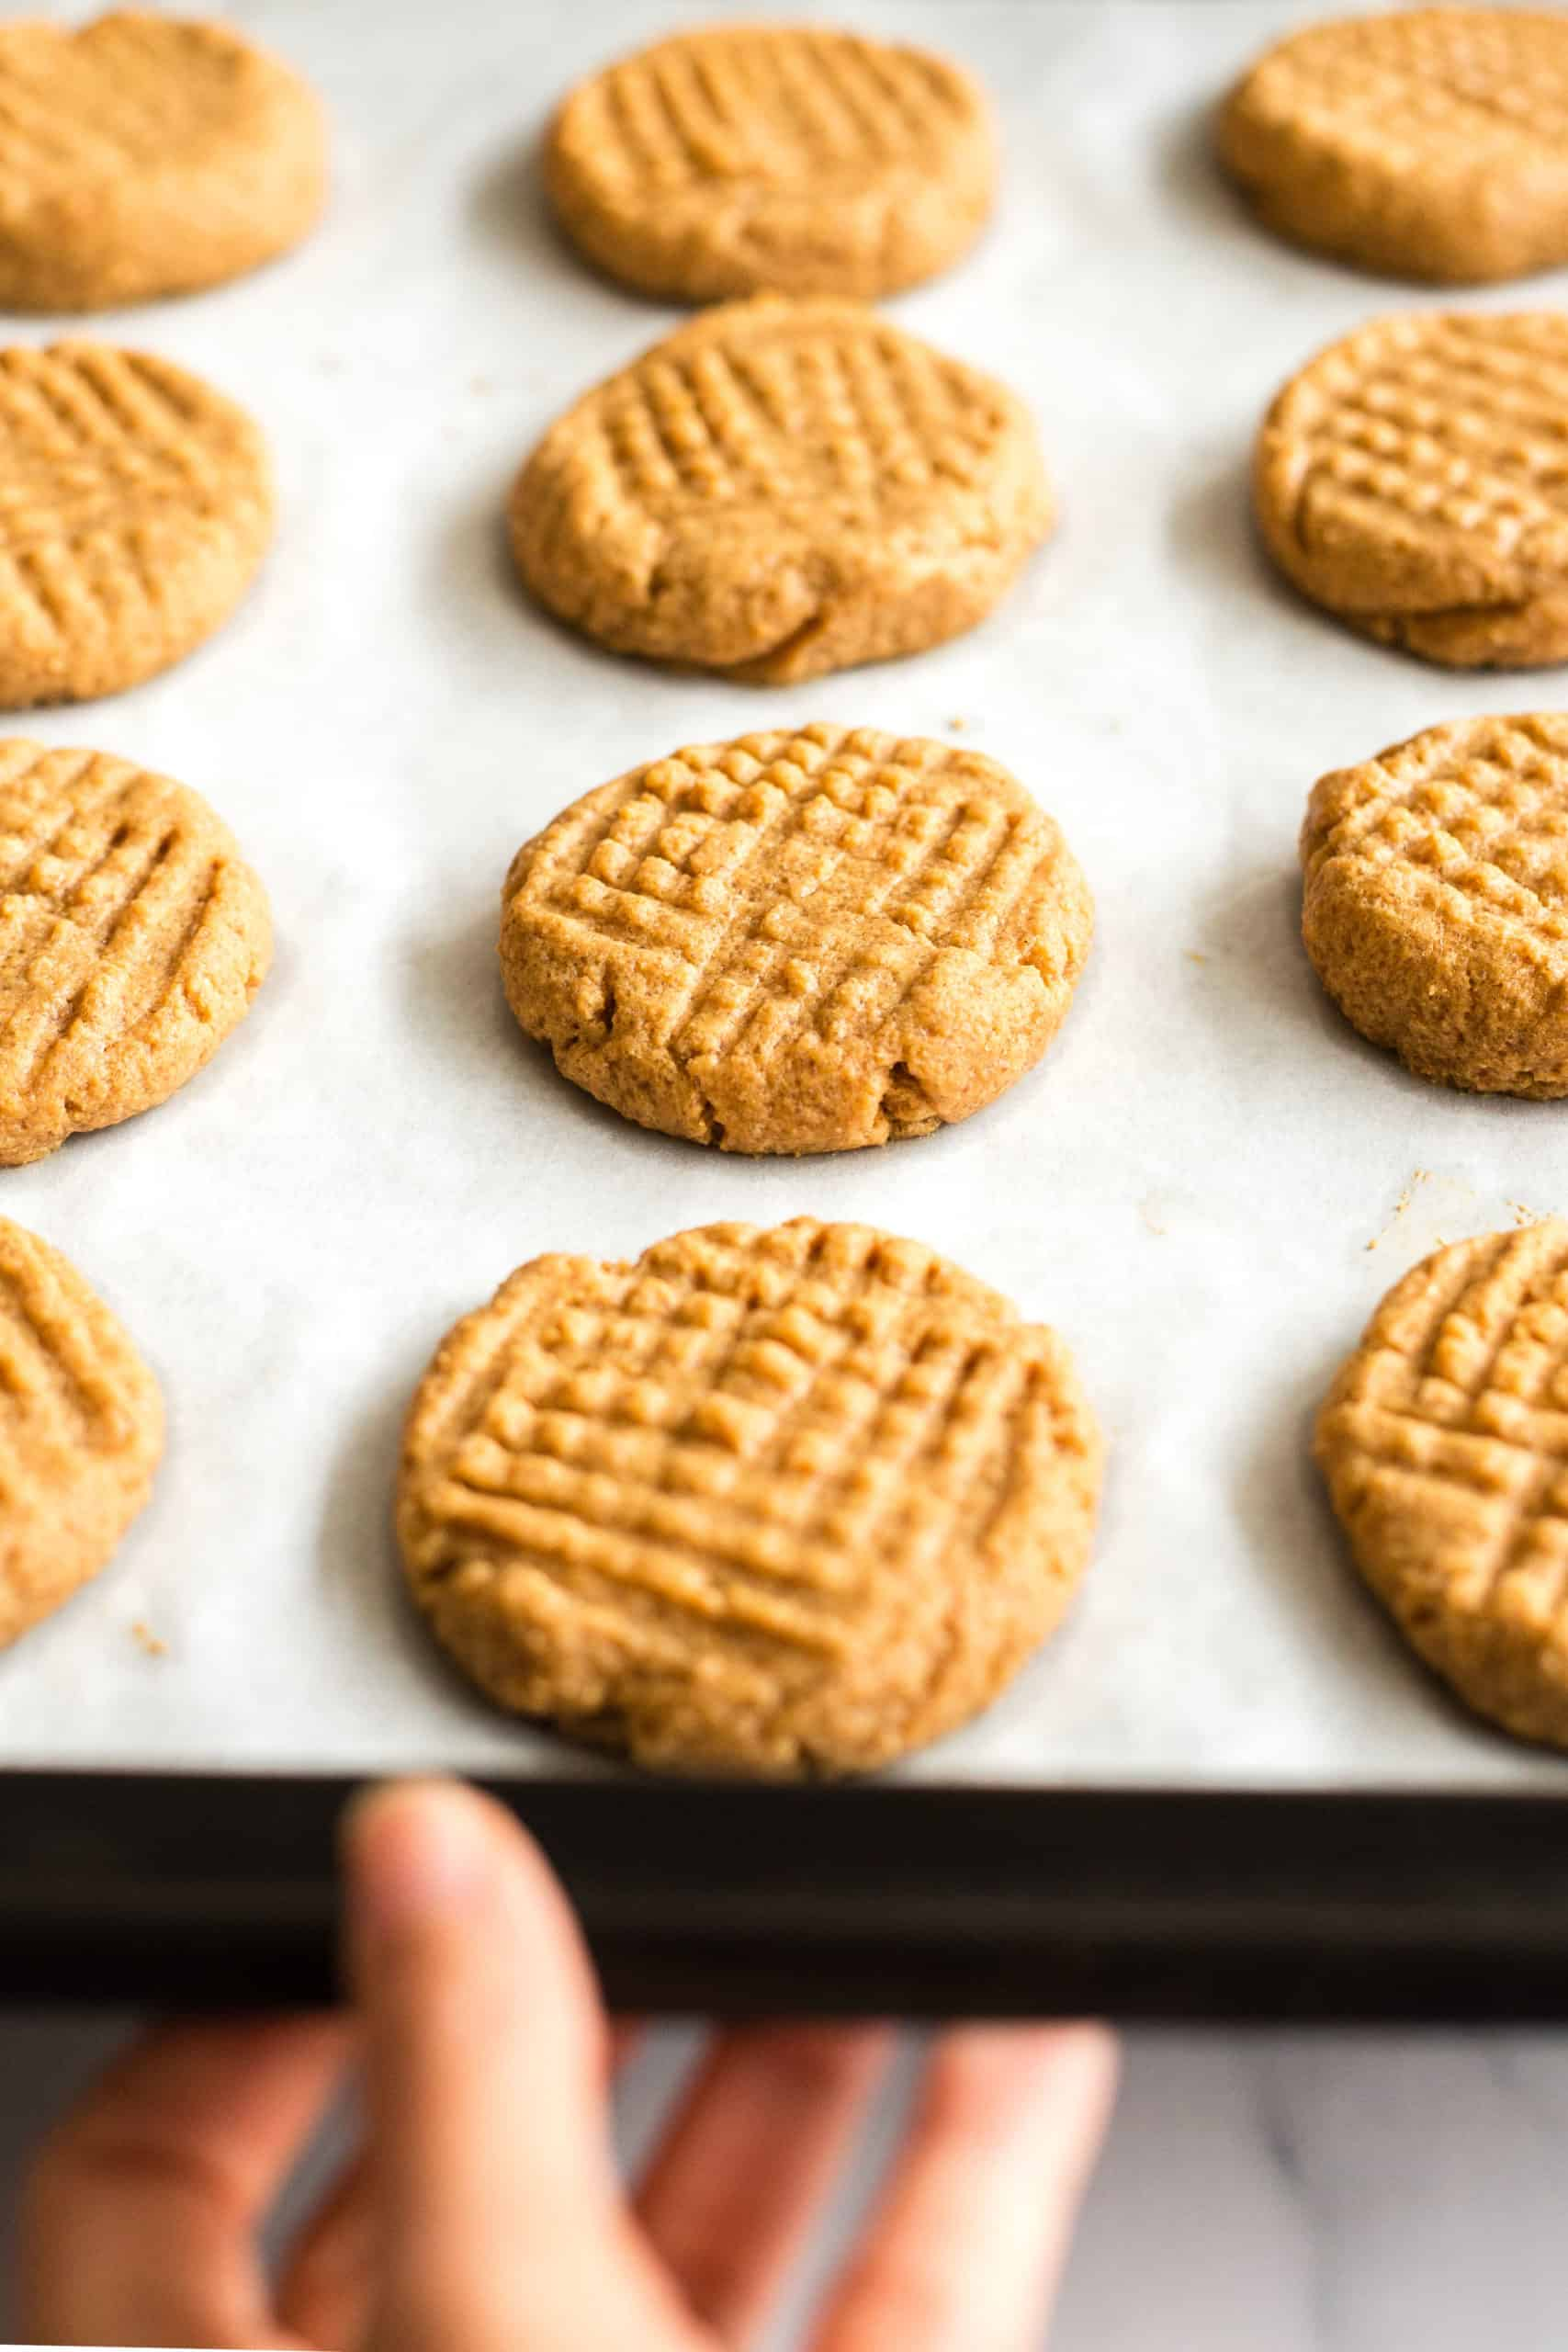 Hand holding a baking sheet full of freshly baked flourless peanut butter cookies.